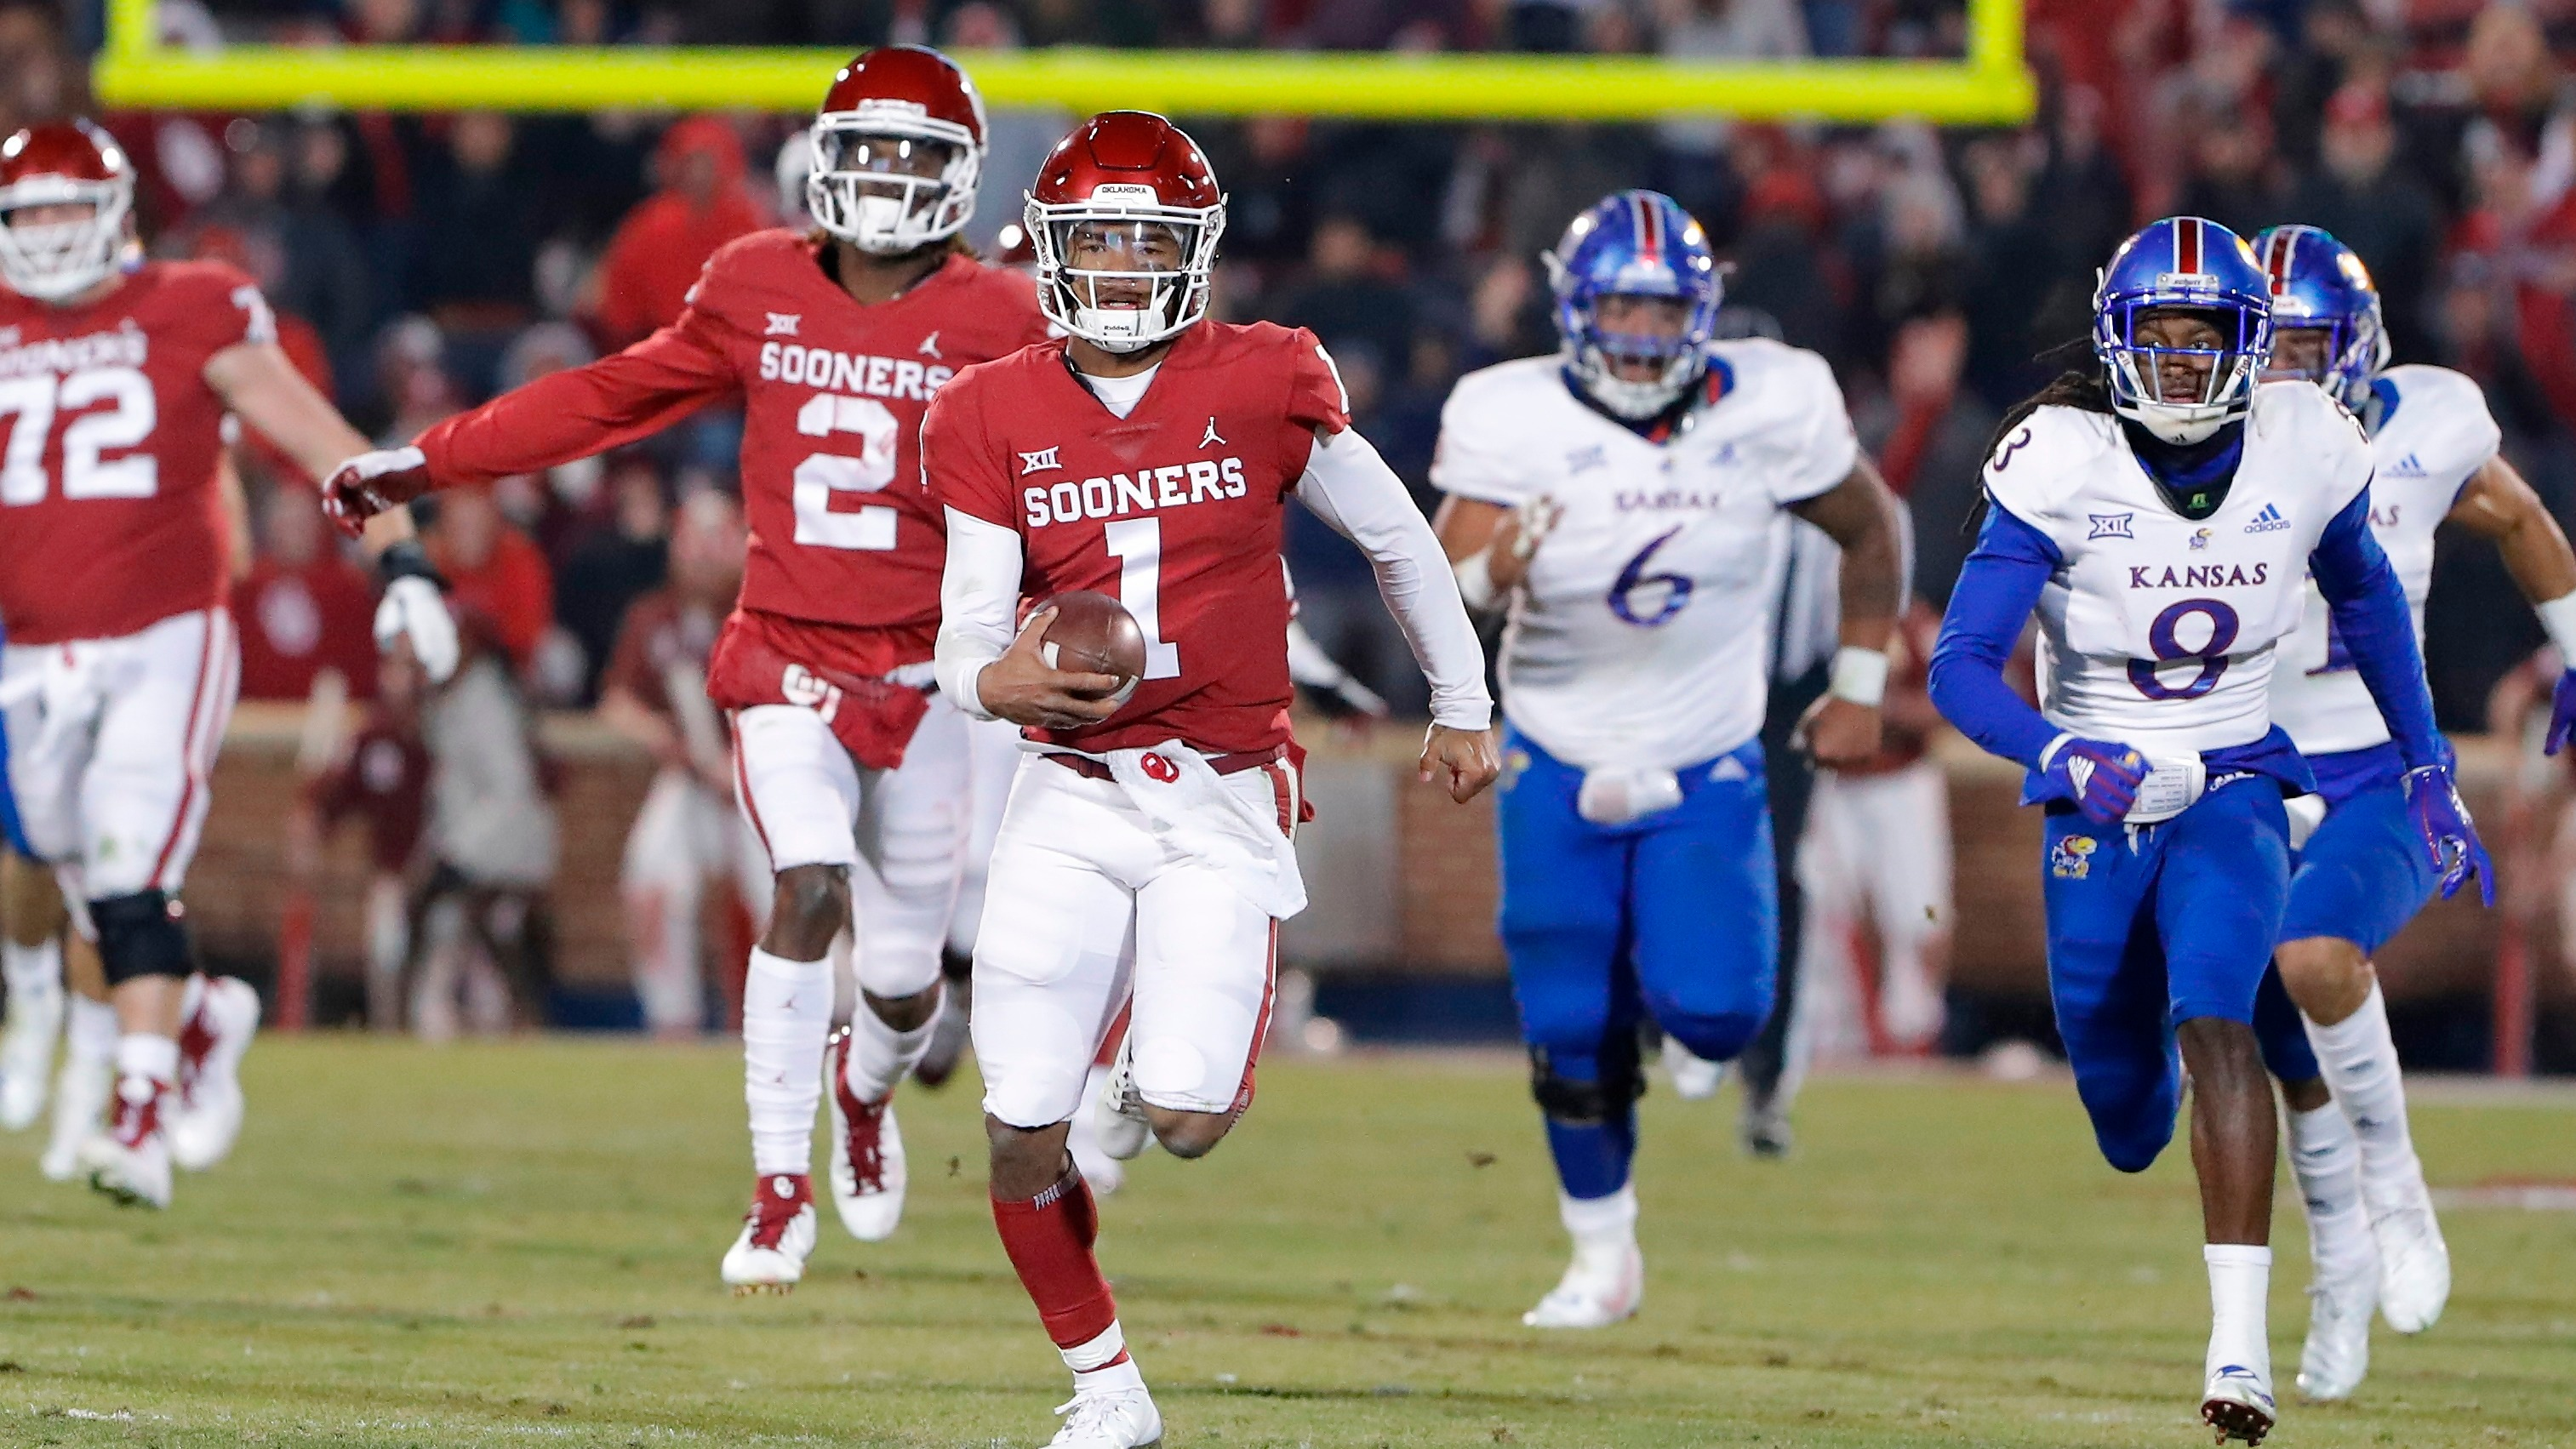 Cfp 2019 Odds And Betting Lines Oklahoma Gets In But Alabama And